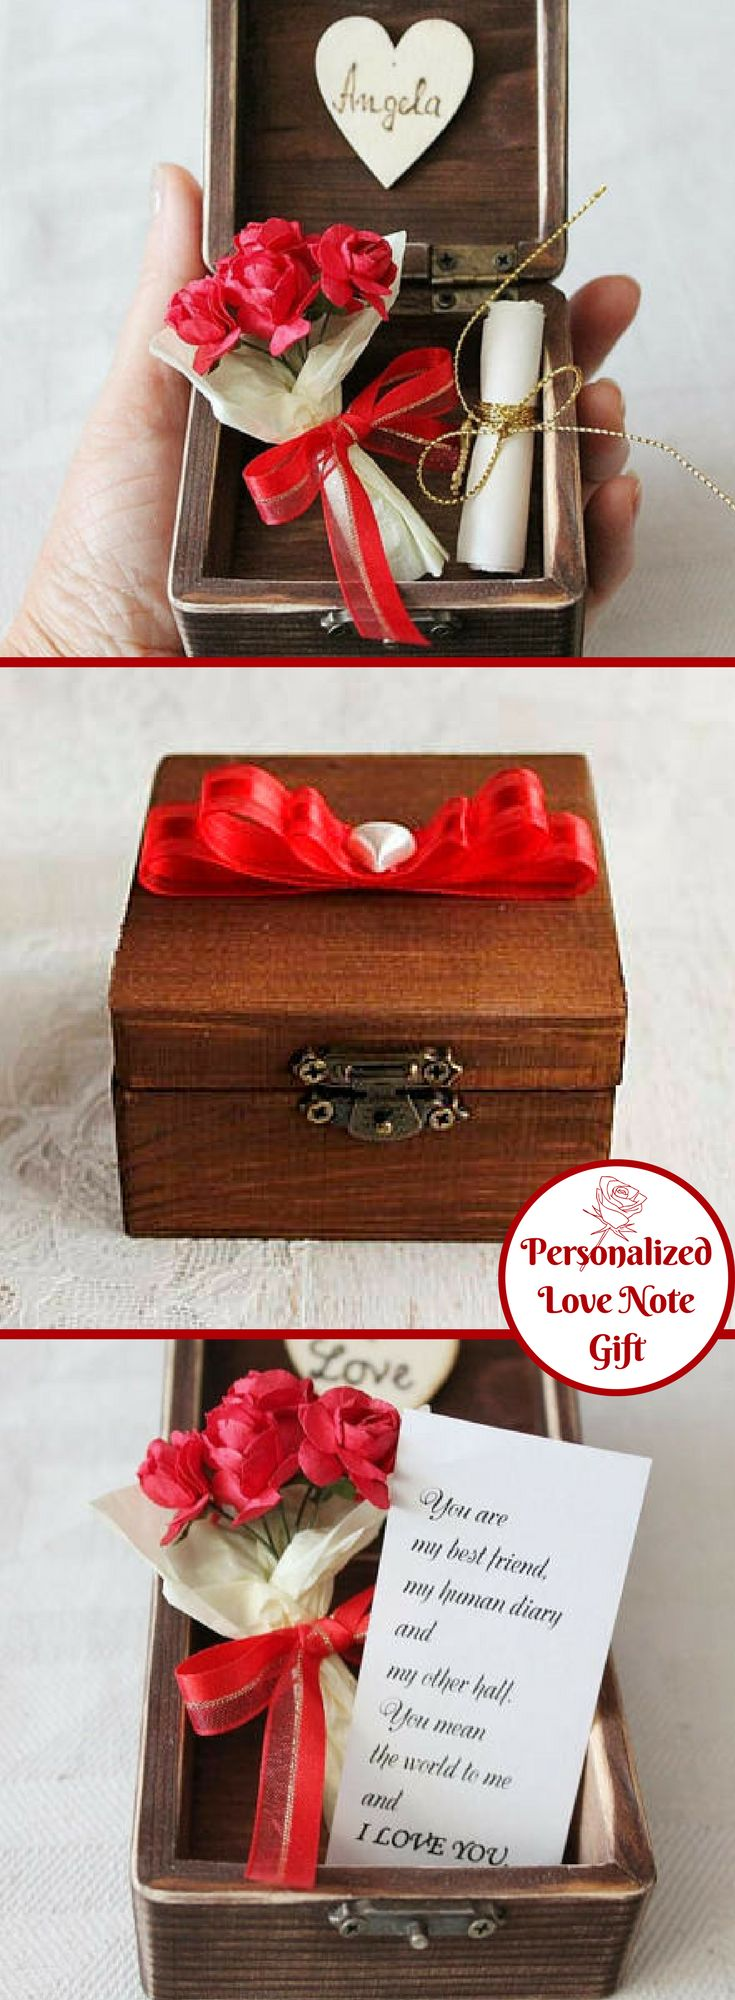 How sweet is this? So romantic! Great gift idea to give your sweetheart for her birthday. Love message, tied with golden string and small gold key charm, a bunch or red roses in a small wooden jewelry box. Long distance gift for her, great gift for woman or wife! This wooden jewelry box would be perfect personalized gift, great firs anniversary gift for your wife, gift for mom, romantic gift for your girlfriend. #Ad #giftforher #personalized #birthday #anniversary #valentinesday #love